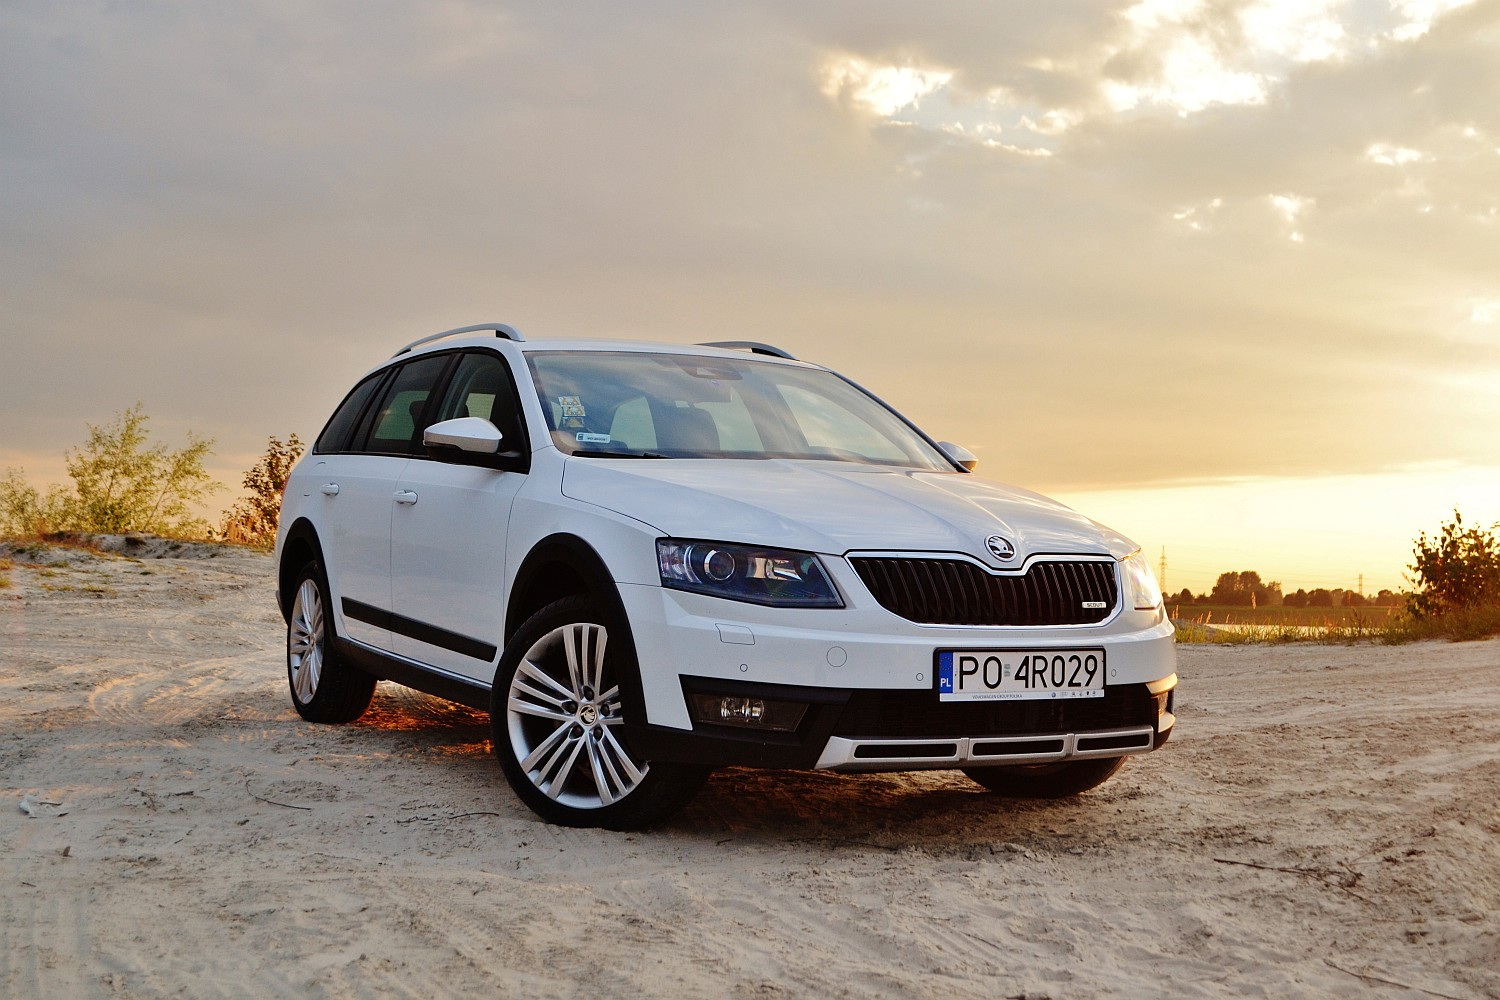 skoda octavia scout 2 0 tdi dsg 4x4 z wszechstronno ci w genach namasce. Black Bedroom Furniture Sets. Home Design Ideas